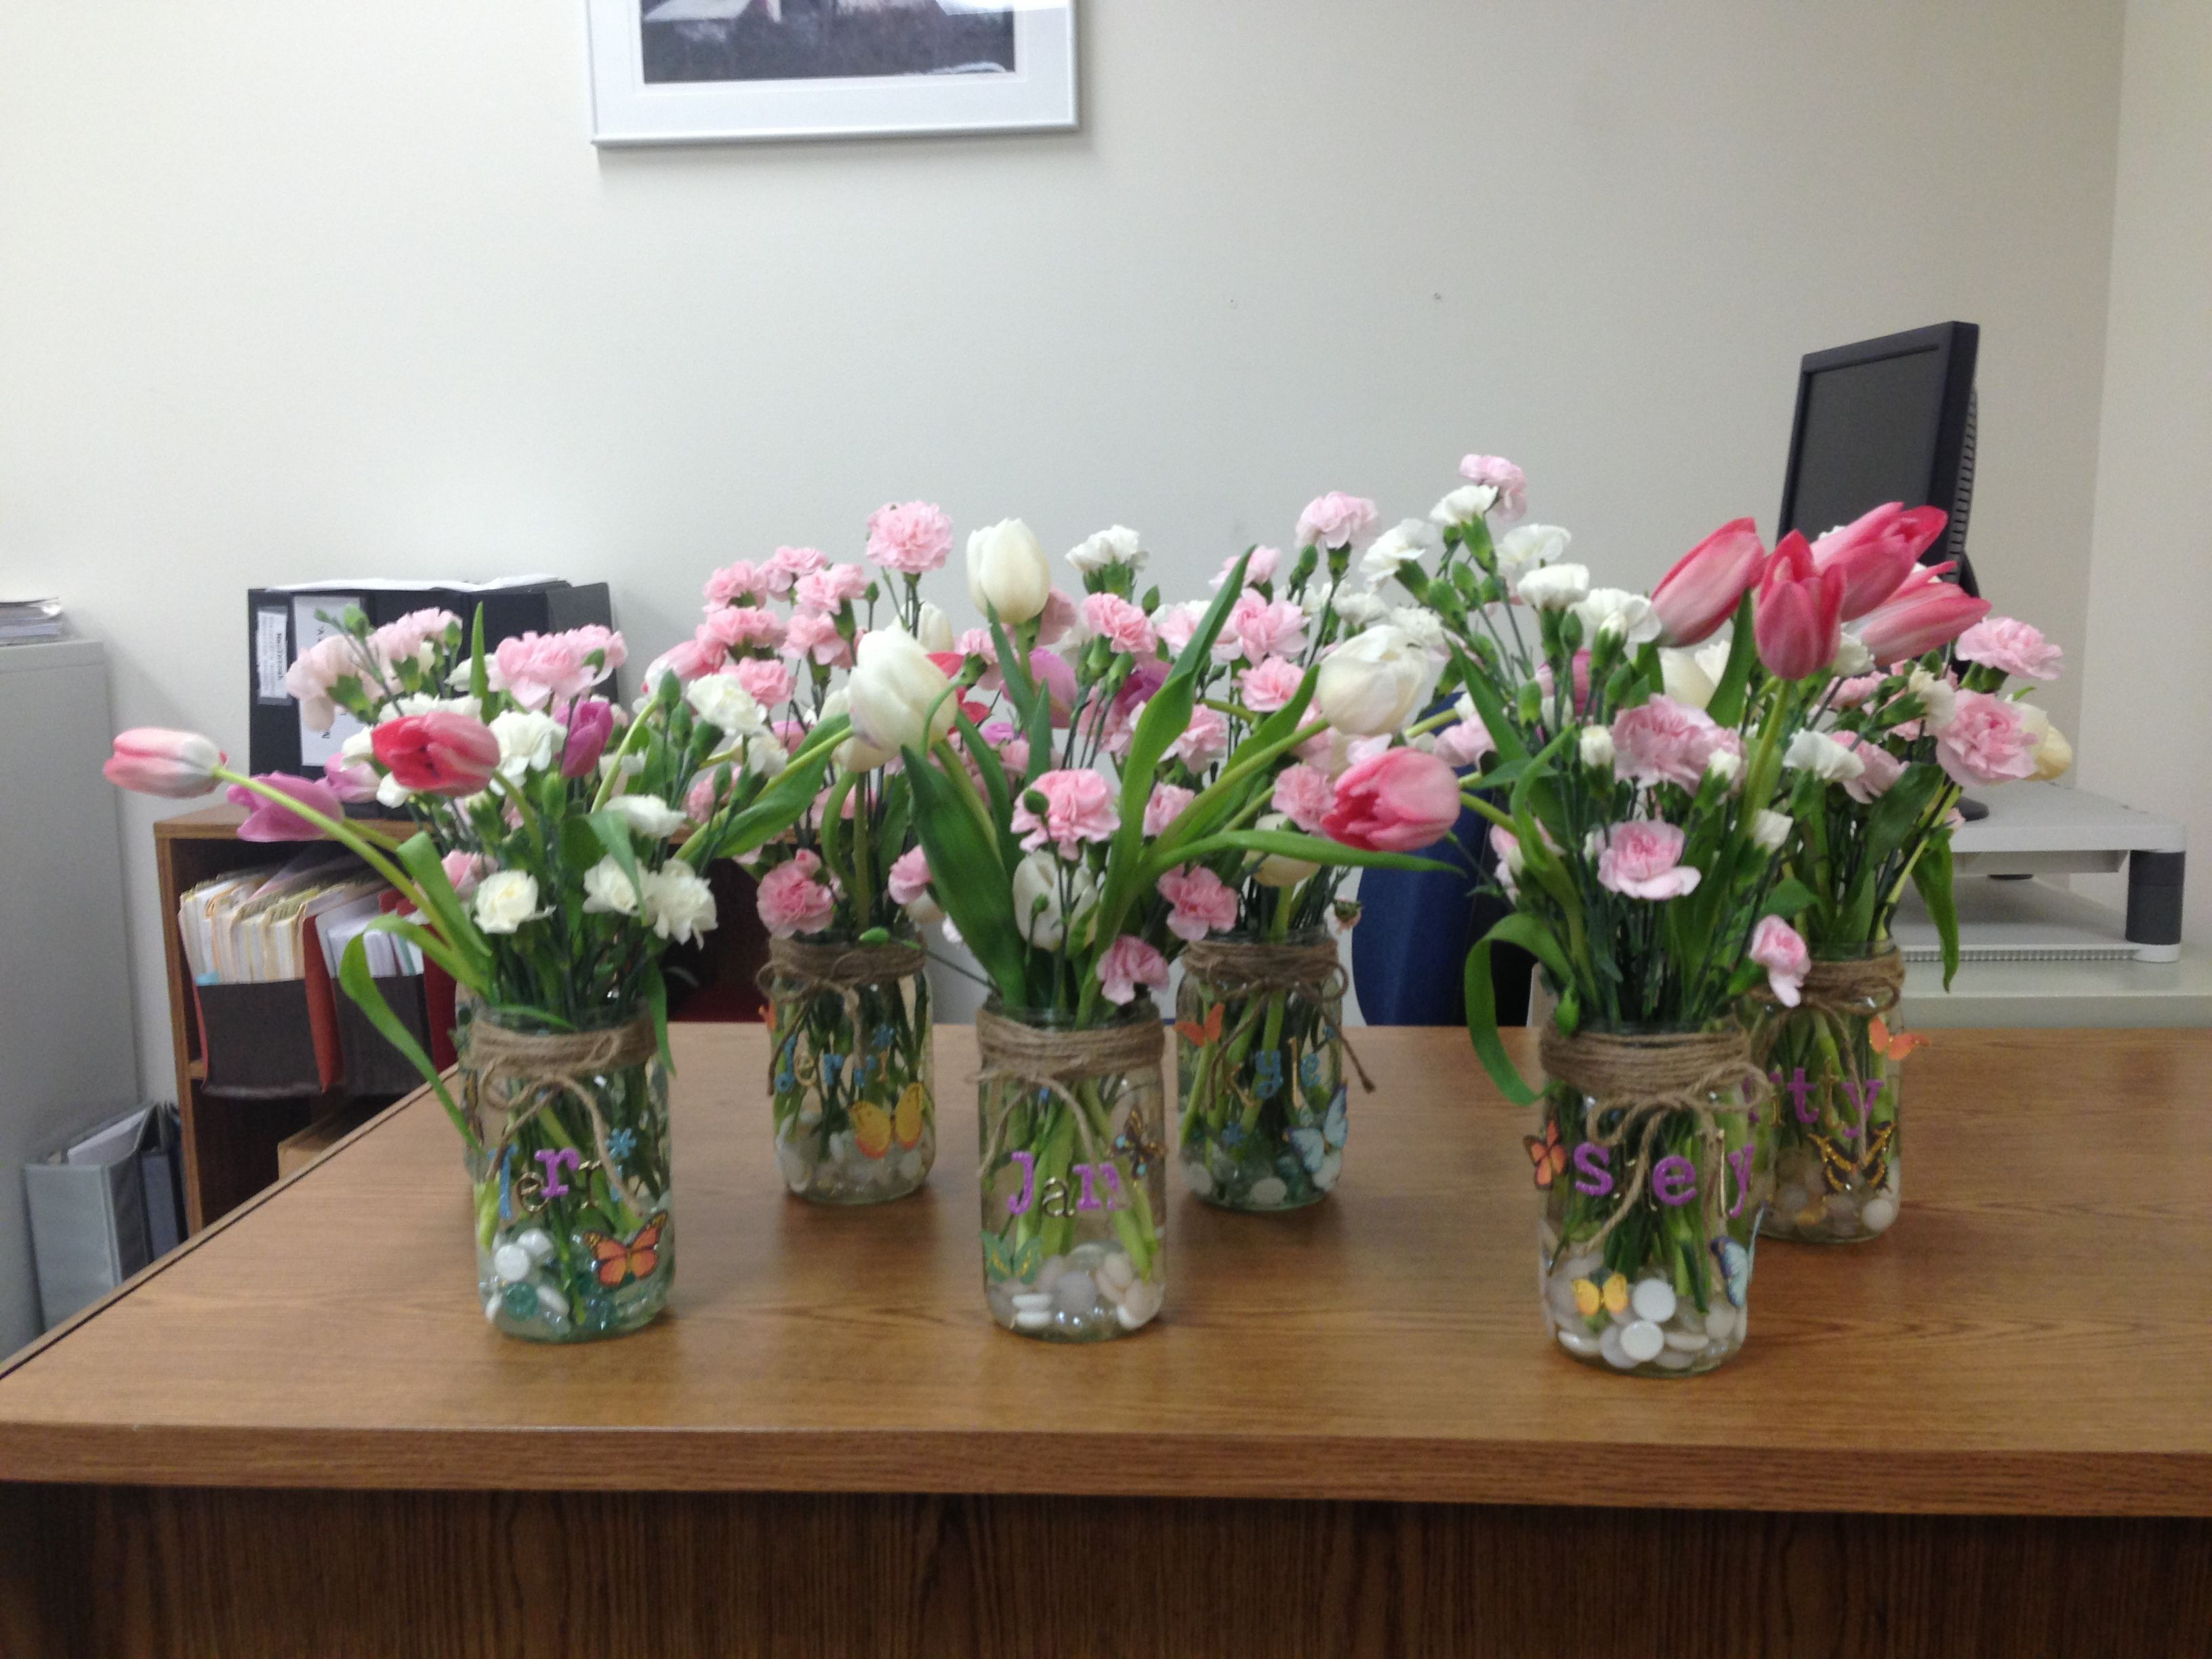 white mason jar vase of mason jar vases for admin day tulips and mini carnations by inside 9d3303cee5325d8f611a25cf23d3ca62